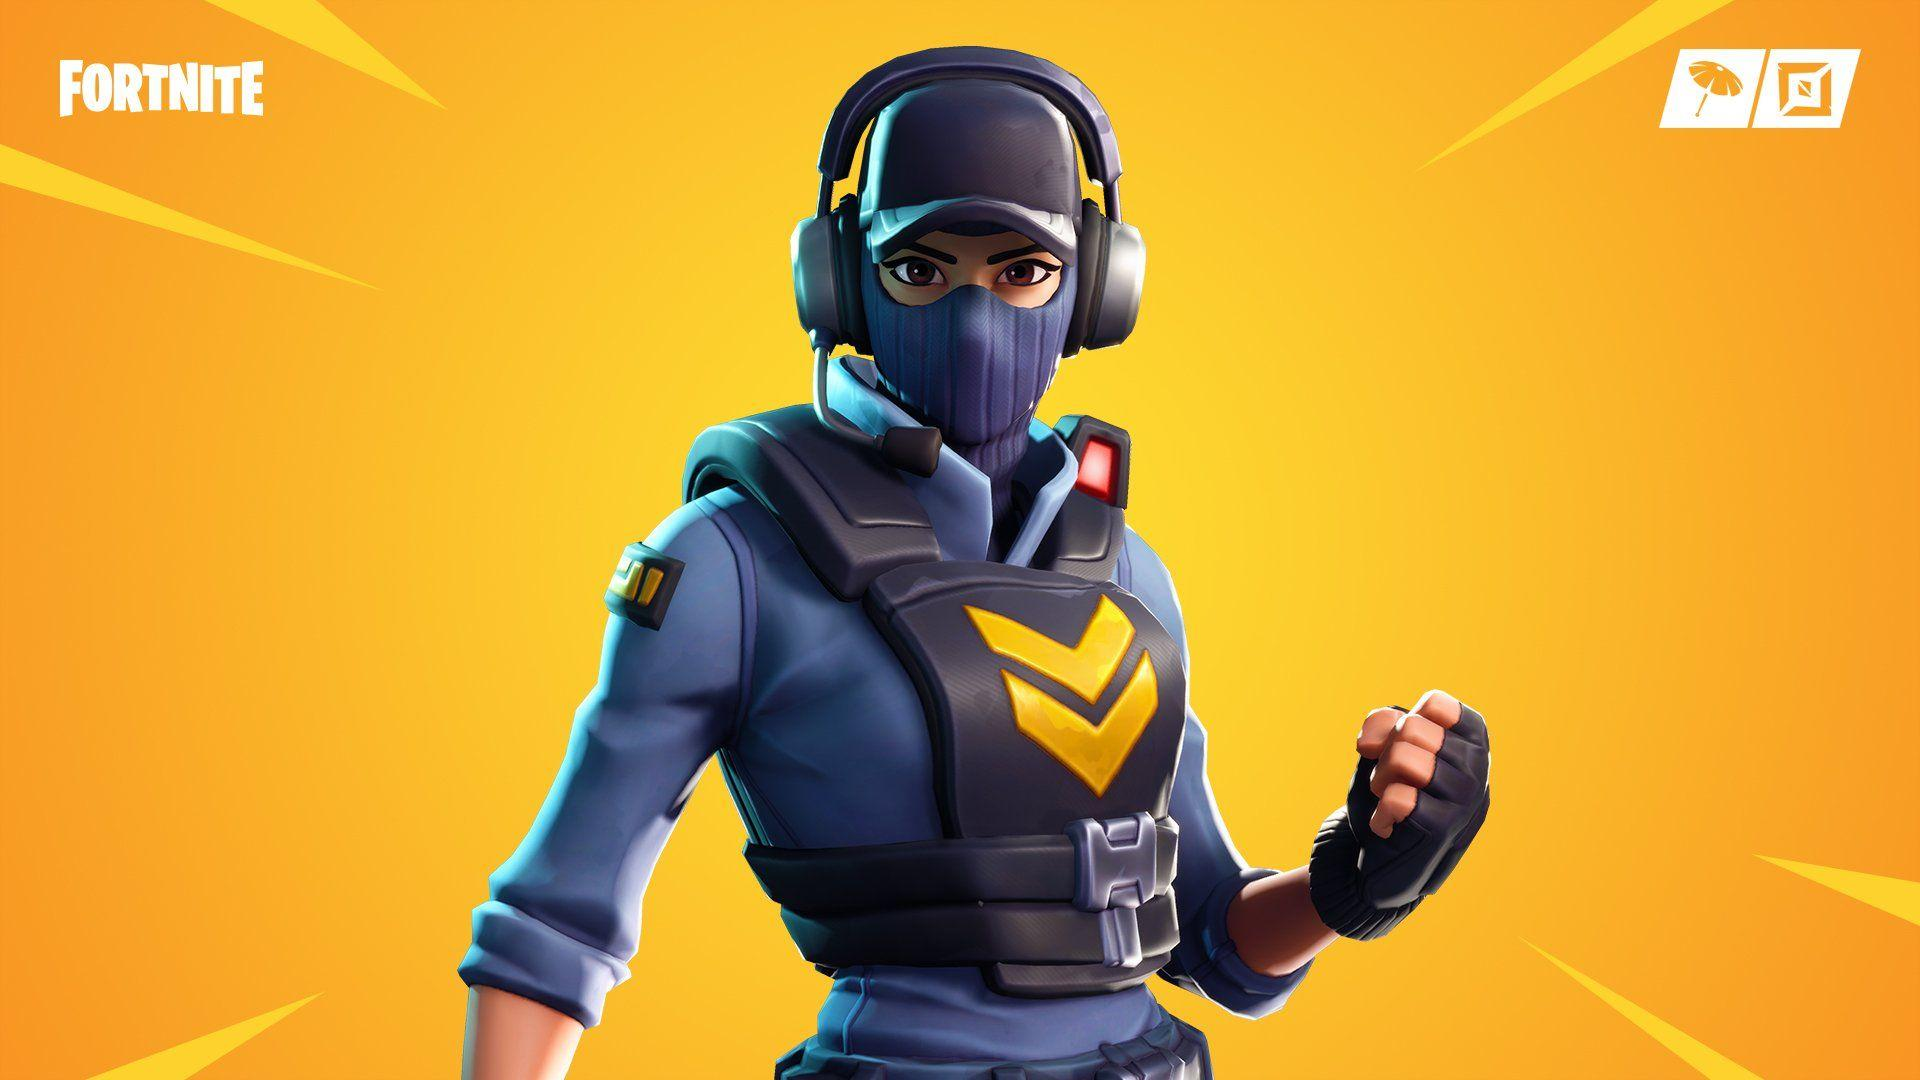 Fortnite daily Item Shop – Saturday, December 8th, 2018